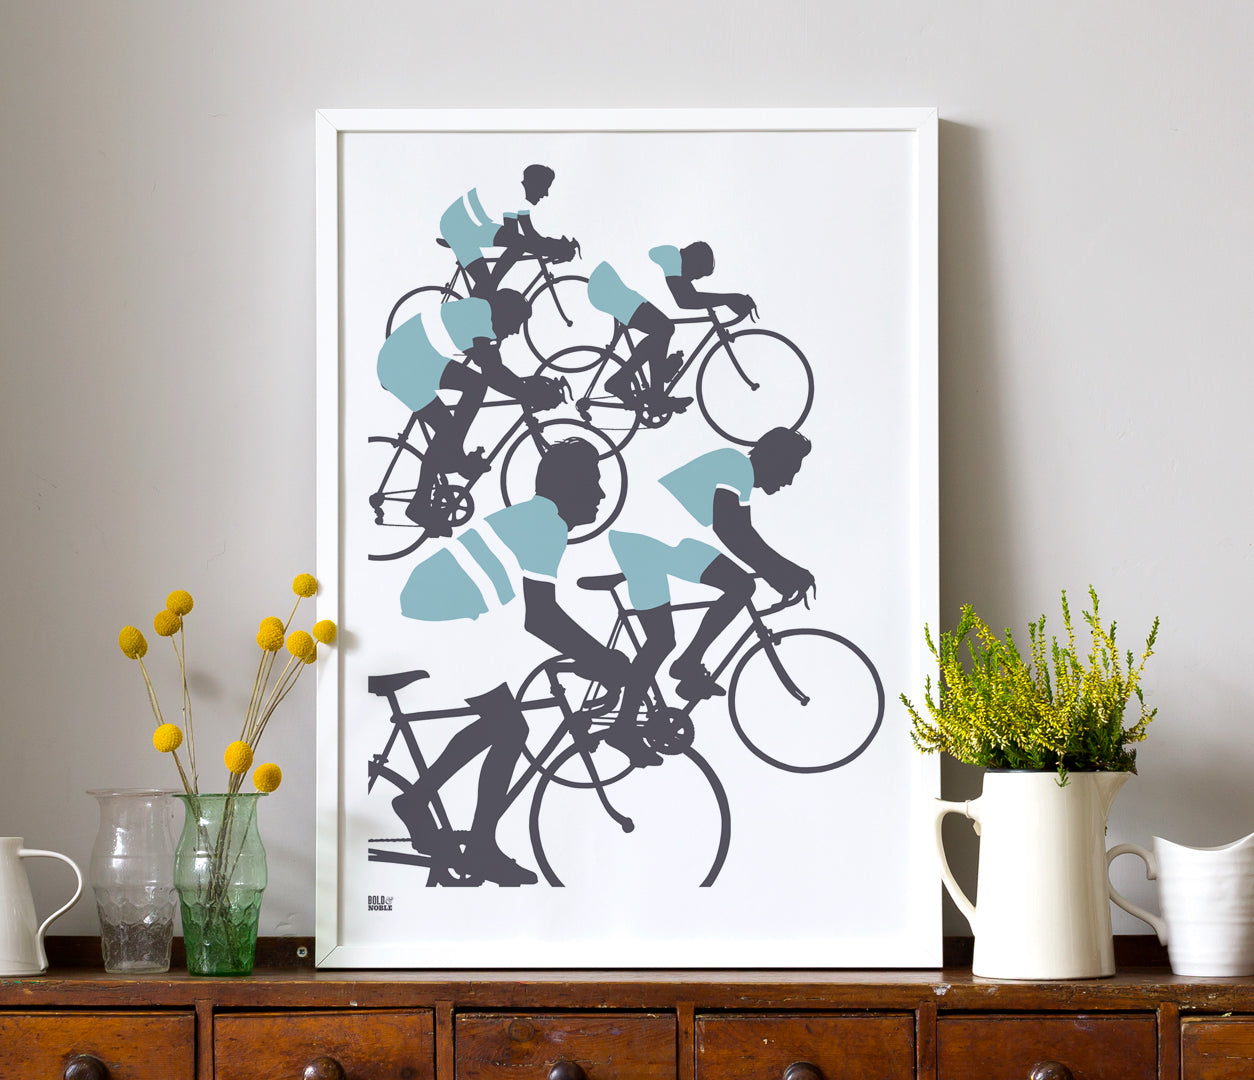 Triathlon, Cycling Wall Poster for the Home in Blue and Grey